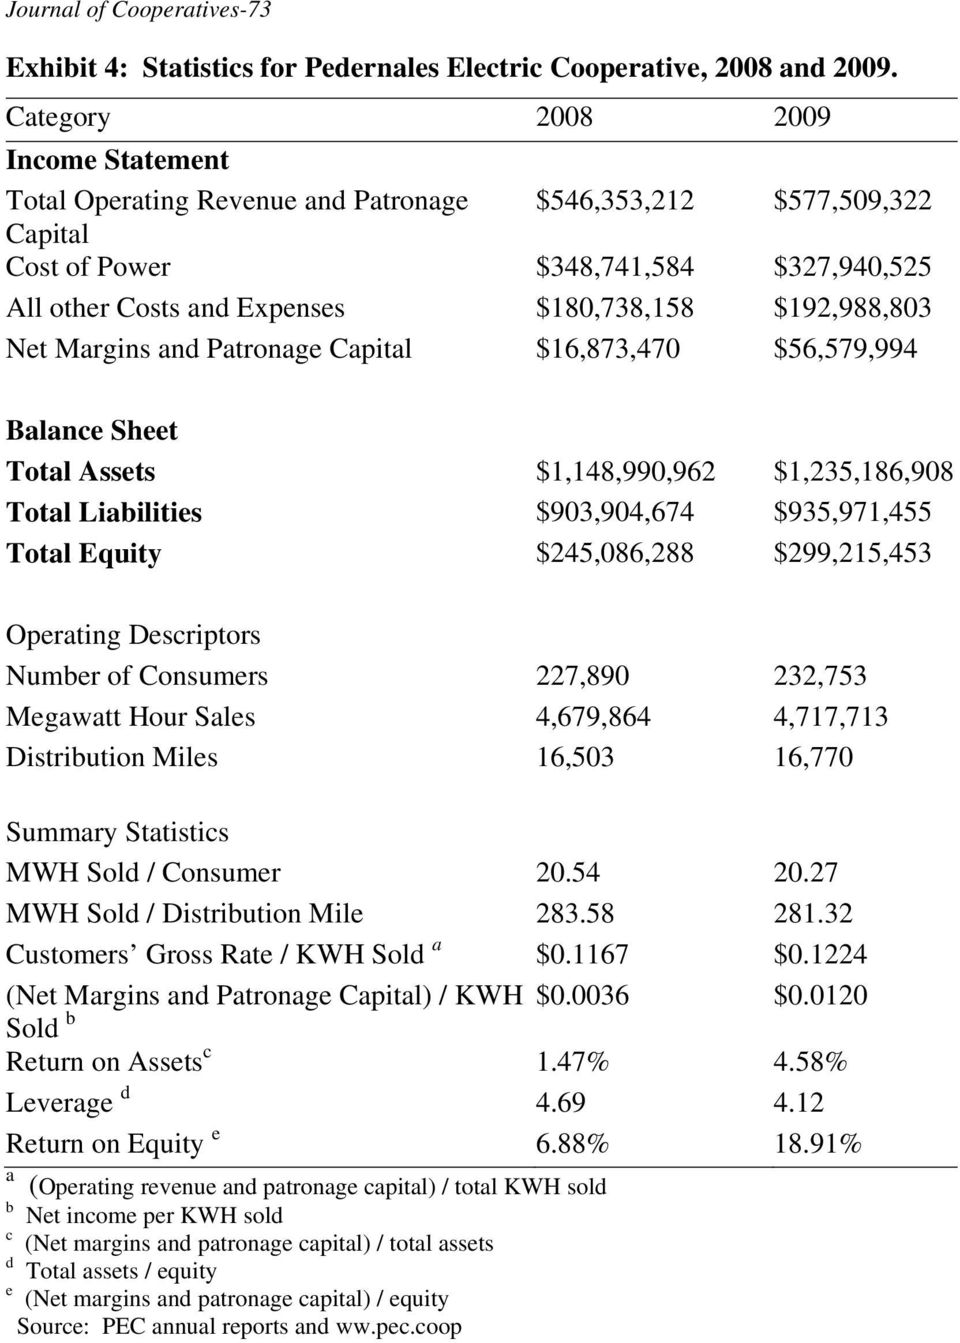 $192,988,803 Net Margins and Patronage Capital $16,873,470 $56,579,994 Balance Sheet Total Assets $1,148,990,962 $1,235,186,908 Total Liabilities $903,904,674 $935,971,455 Total Equity $245,086,288